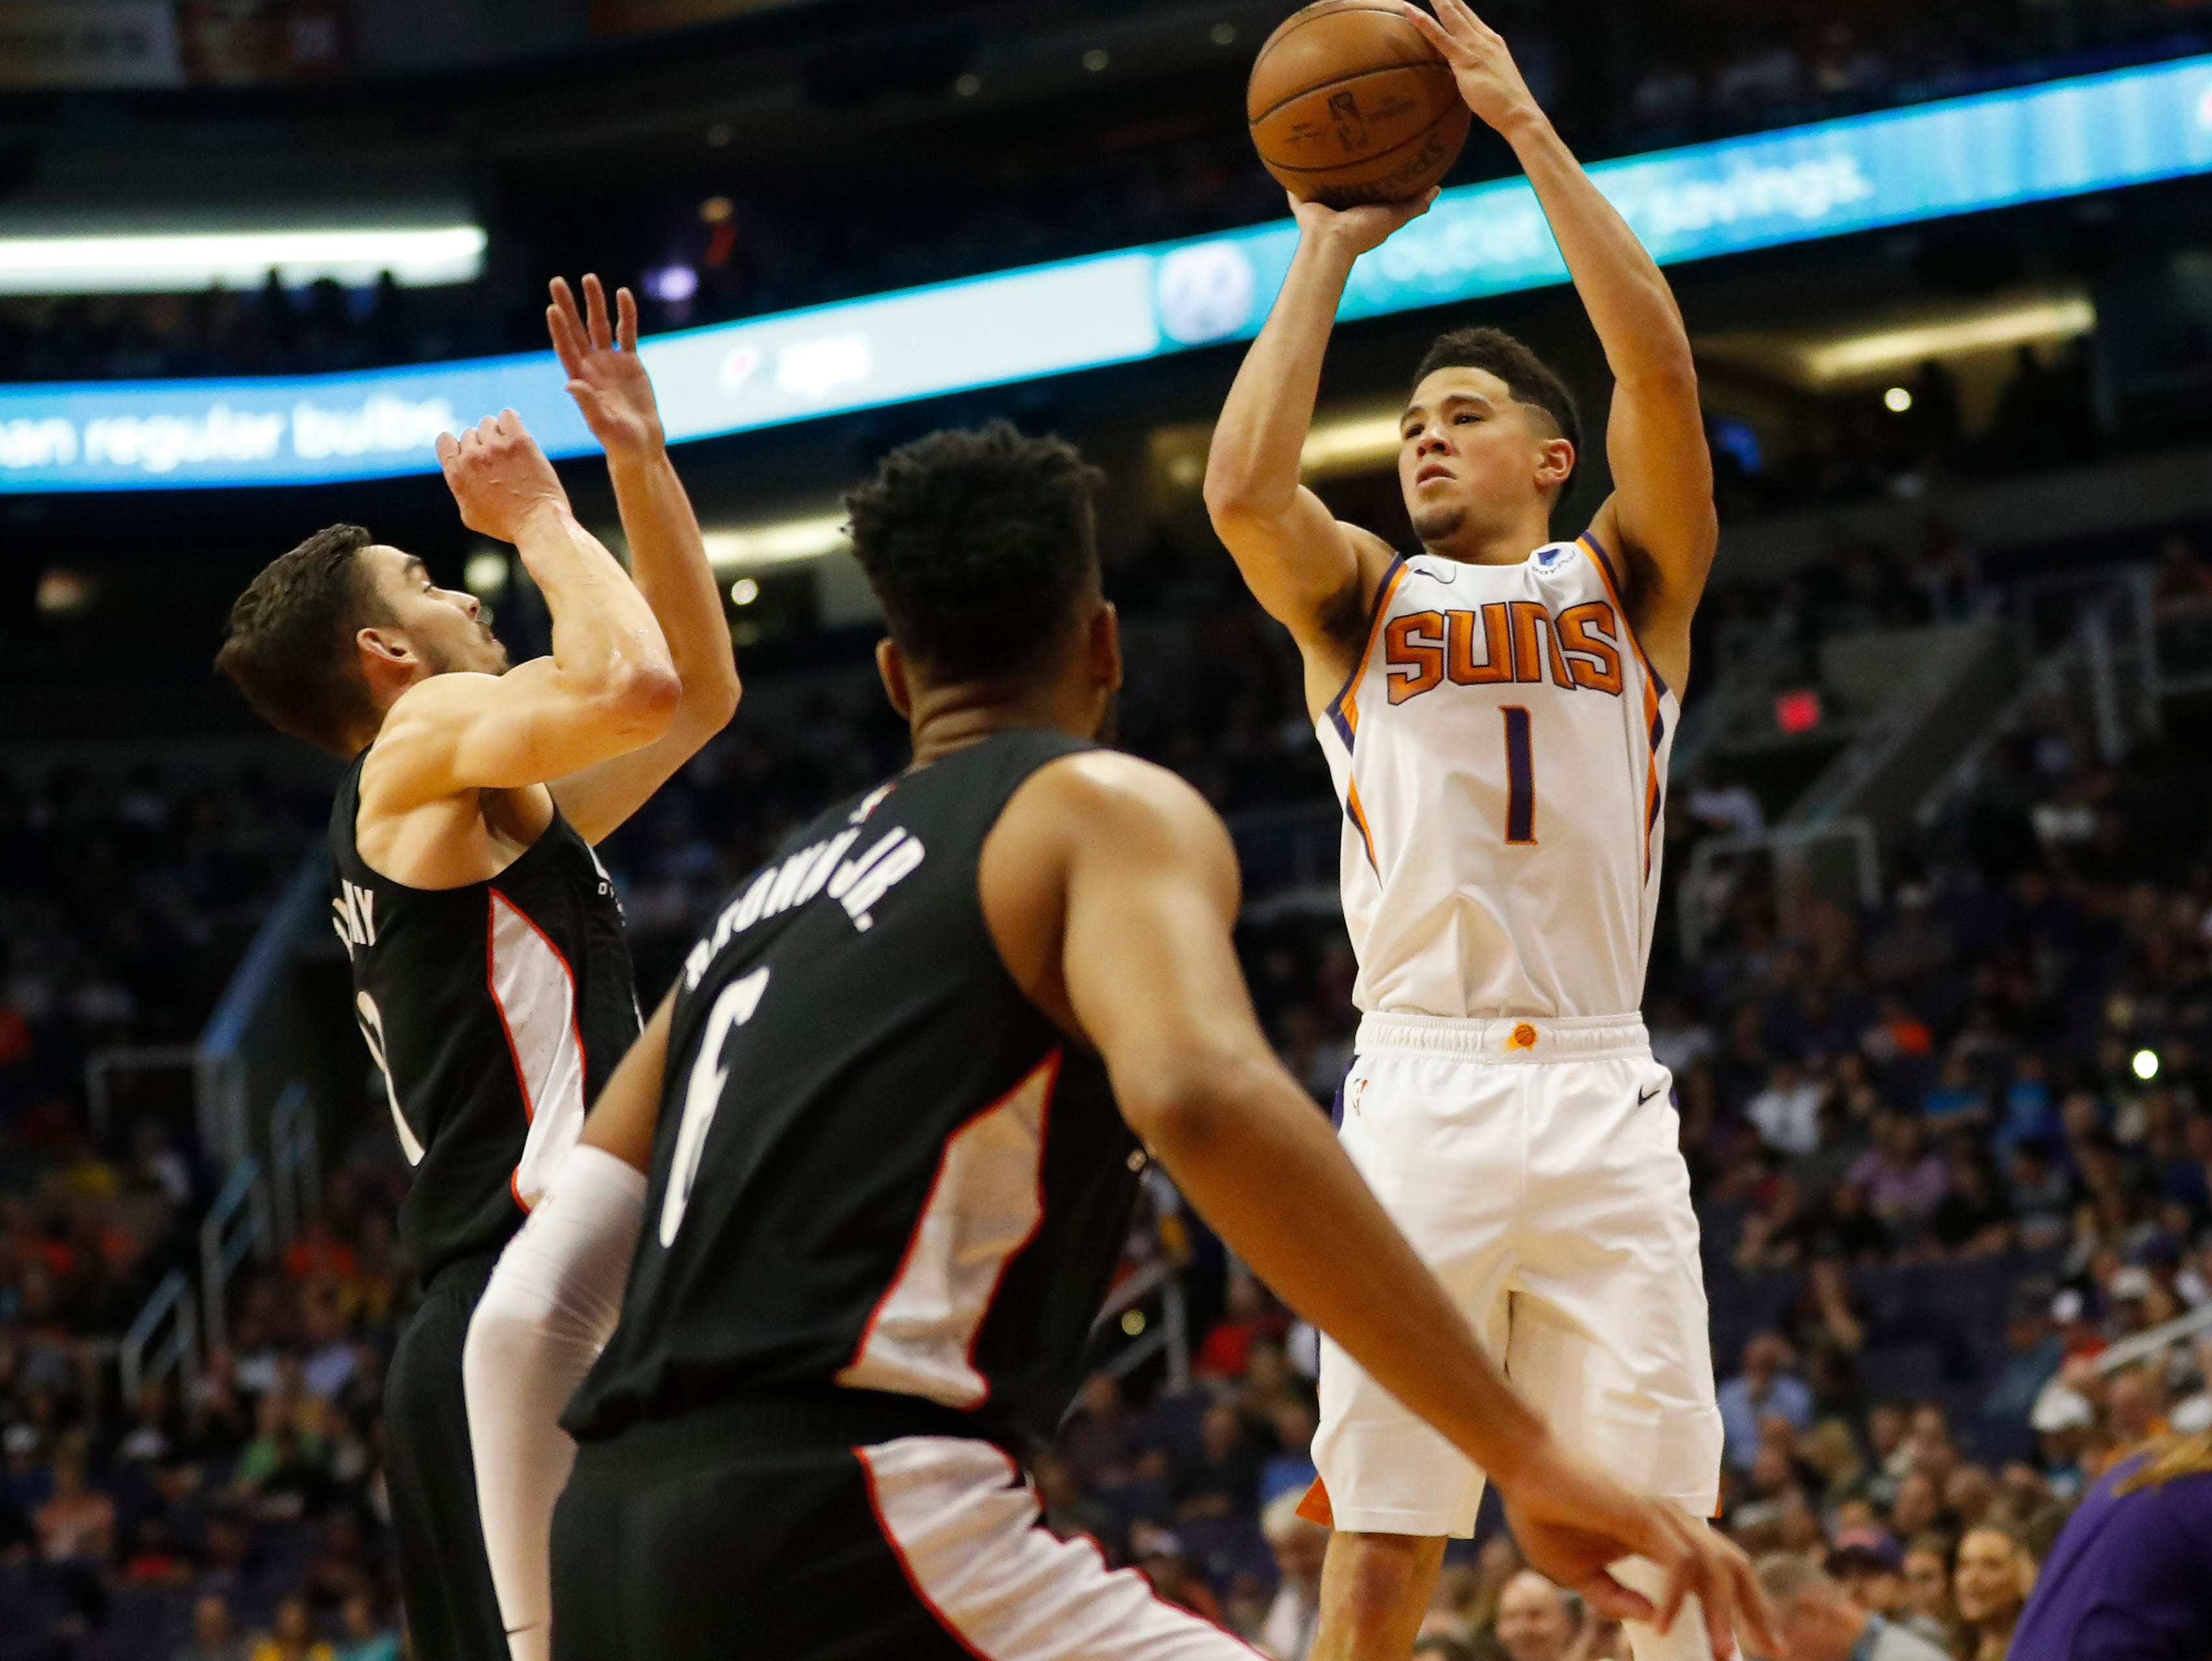 Phoenix Suns guard Devin Booker (1) attempts a three-point shot against the Washington Wizards during the first quarter in Phoenix March 27, 2019.